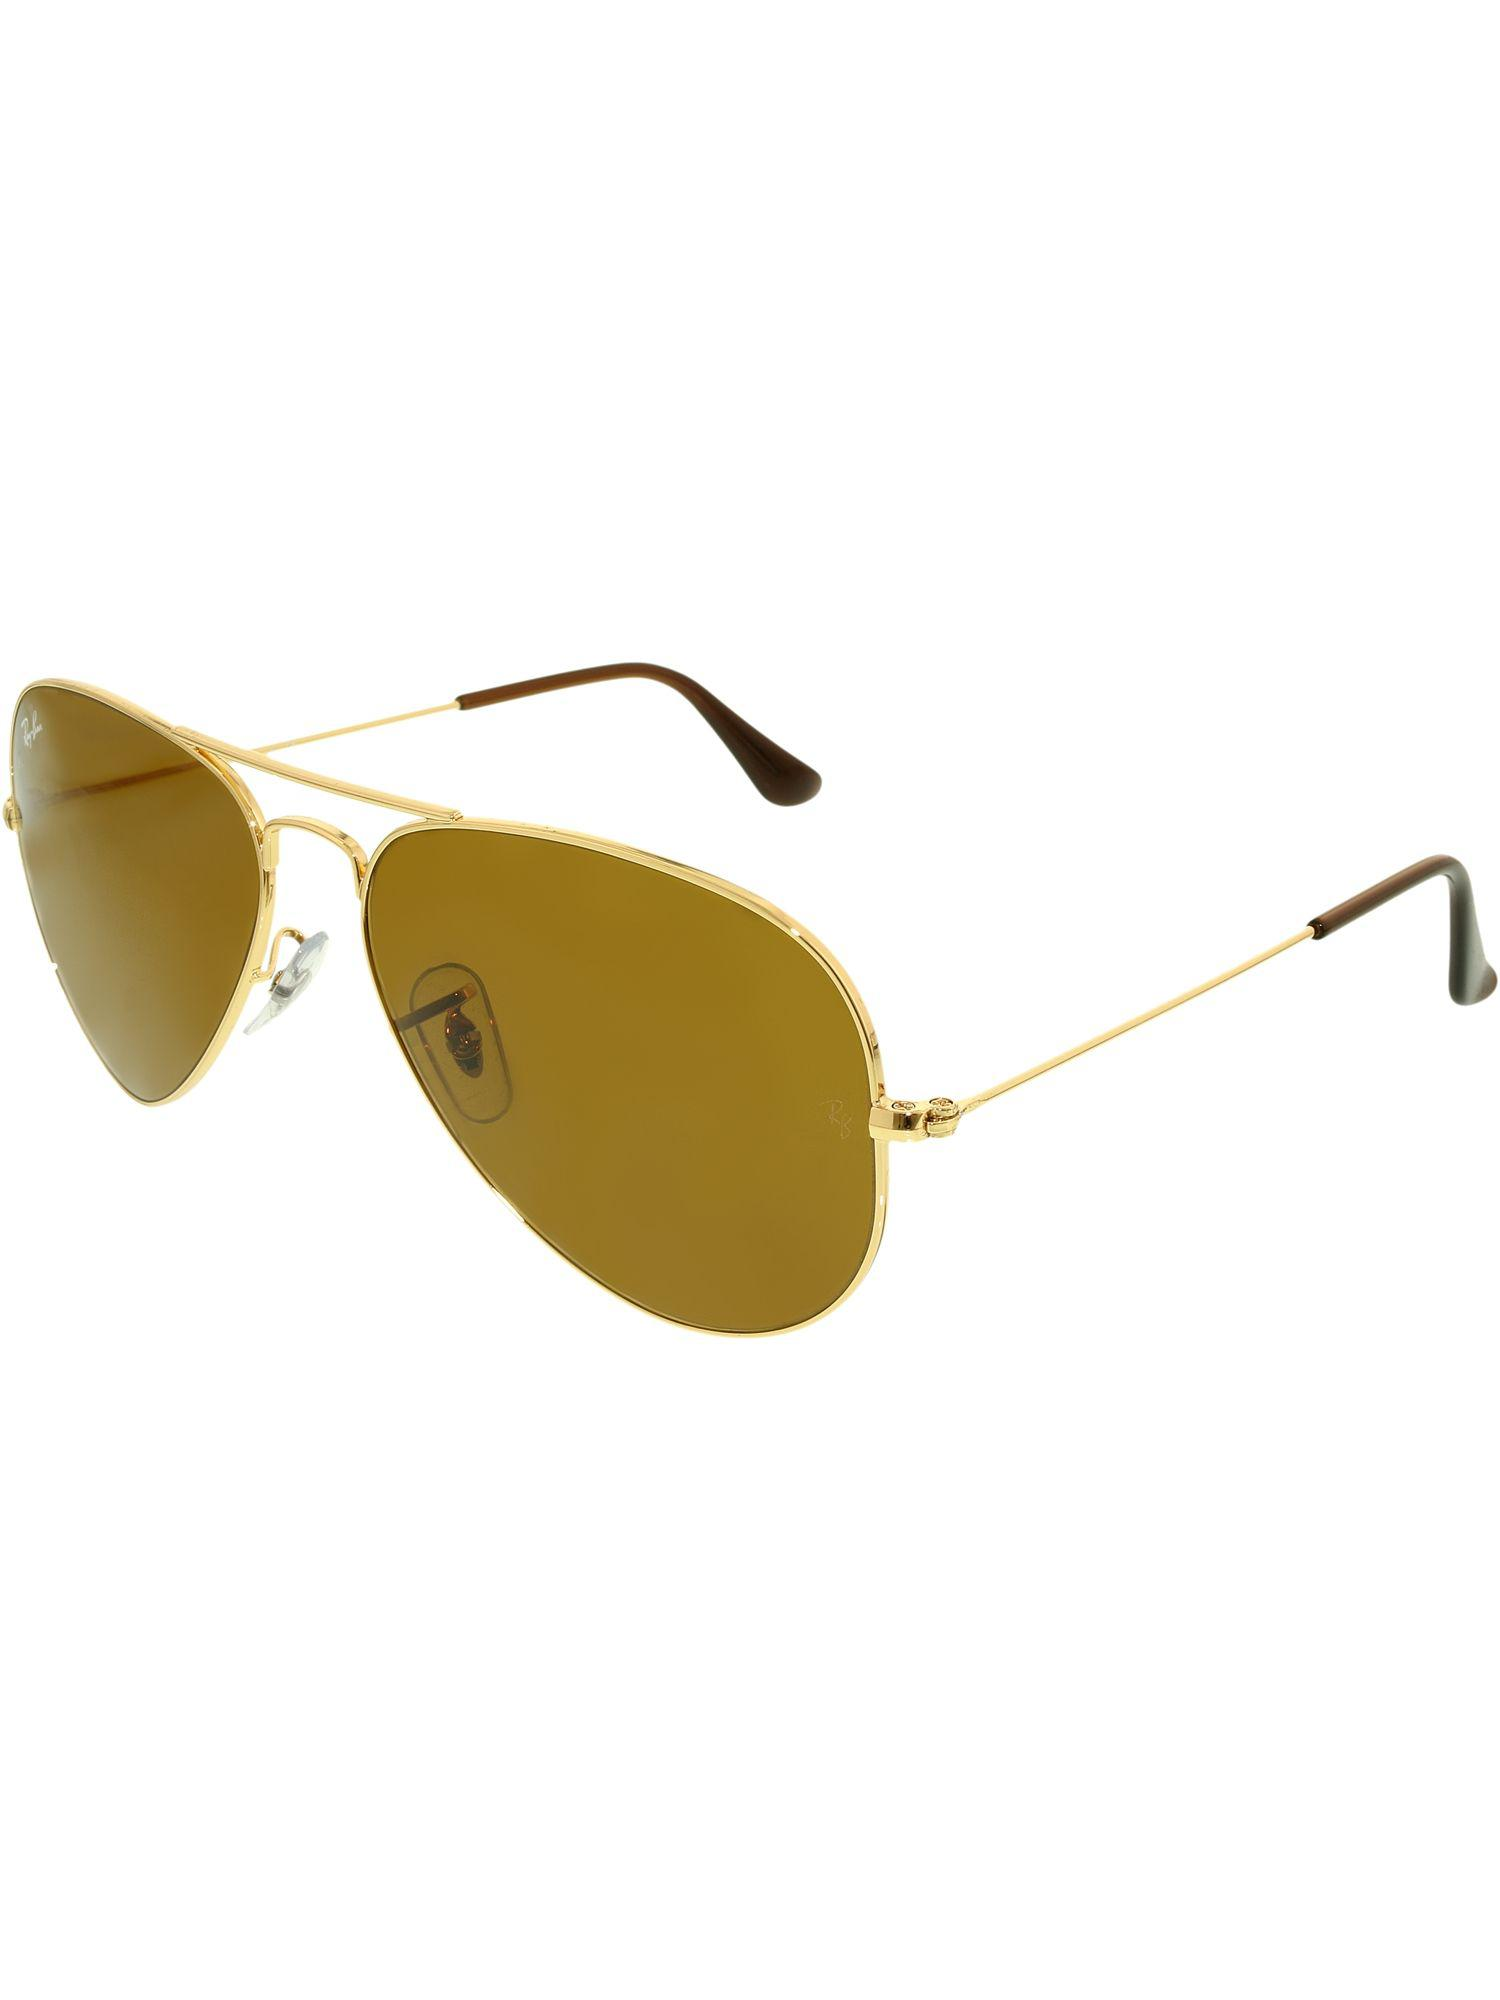 53819f4883 Lyst - Ray-Ban Men s Aviator Rb3025-001 33-58 Gold Sunglasses in ...